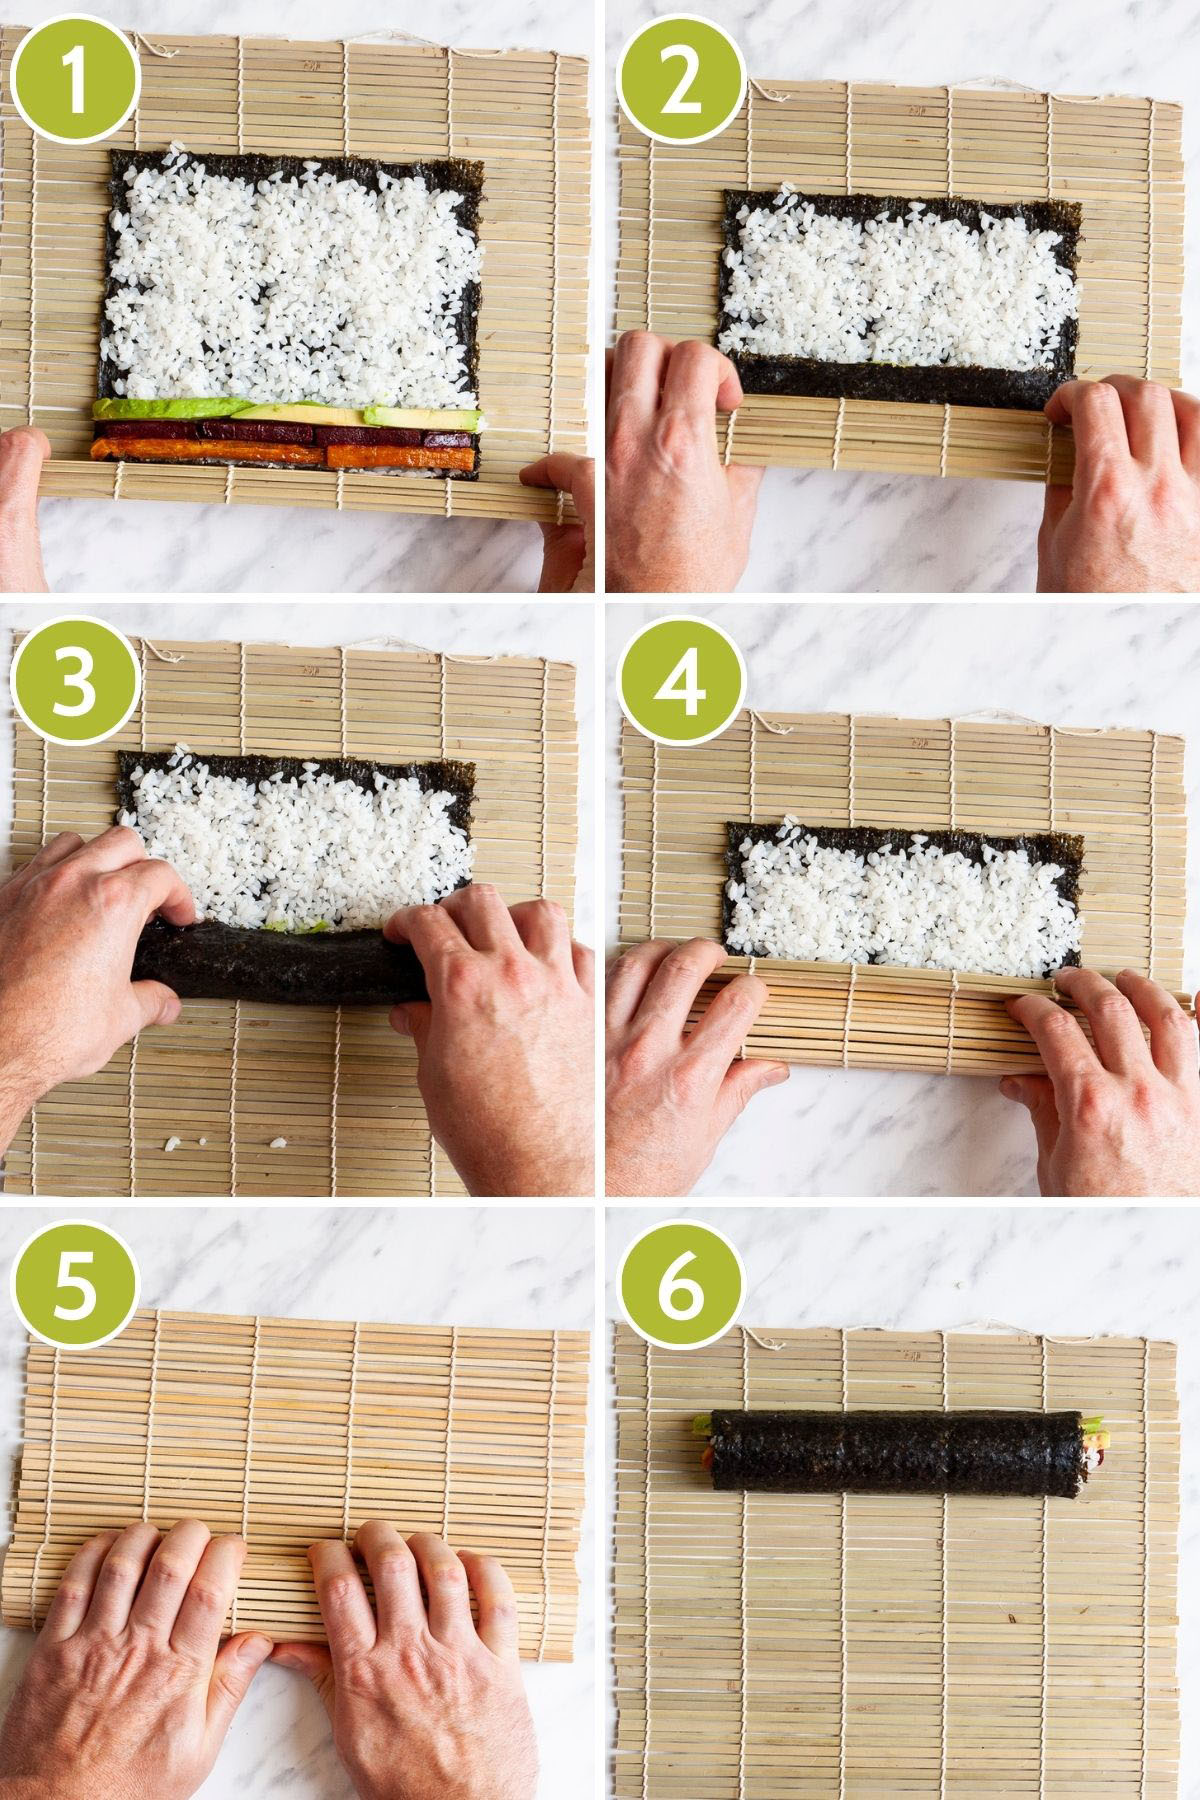 6 photo collage of how to roll sweet potato sushi rolls showing a Bamboo mat with green paper-like sheet topped with white rice and colourful sticks of veggies green purple and yellow forming 3 lines and a hand rolling it further on each step.